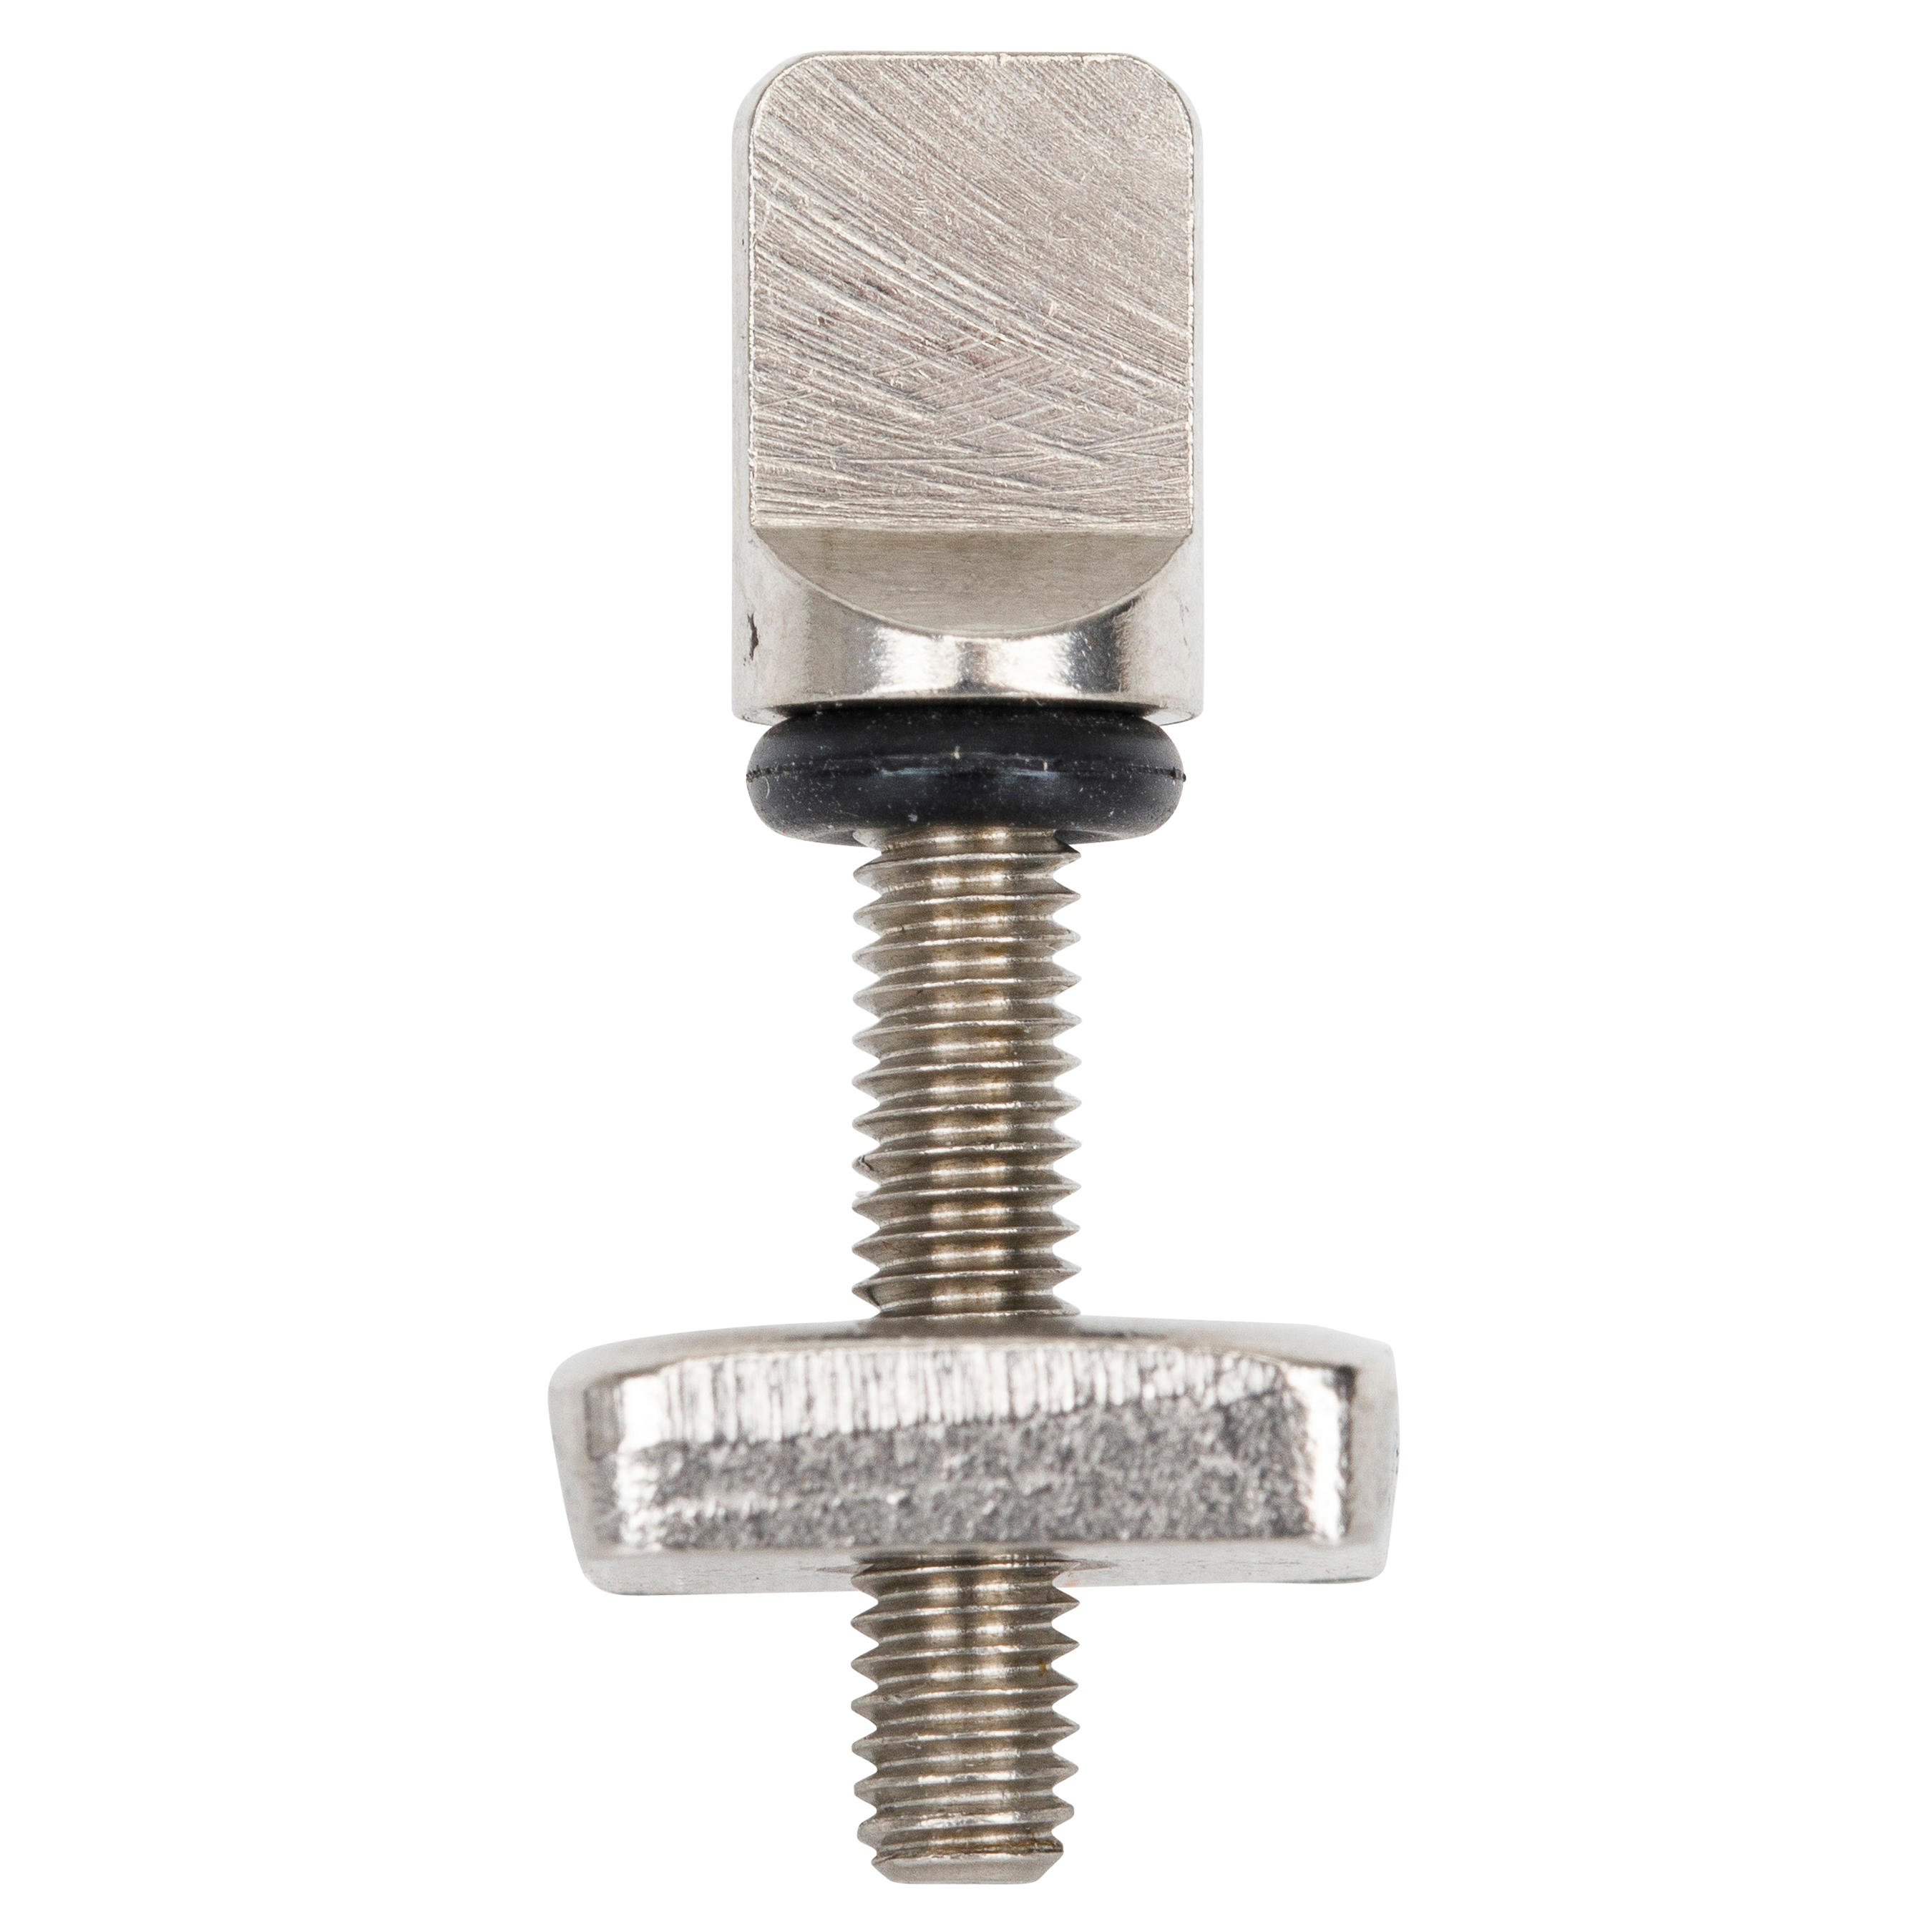 US BOX SCREW NUT FOR STAND UP PADDLE FIN